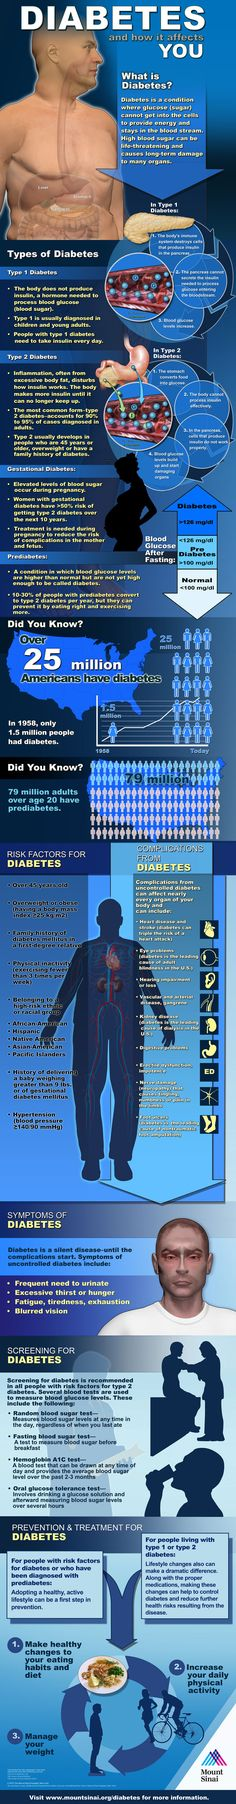 Diabetes And How It Affects You Infographic